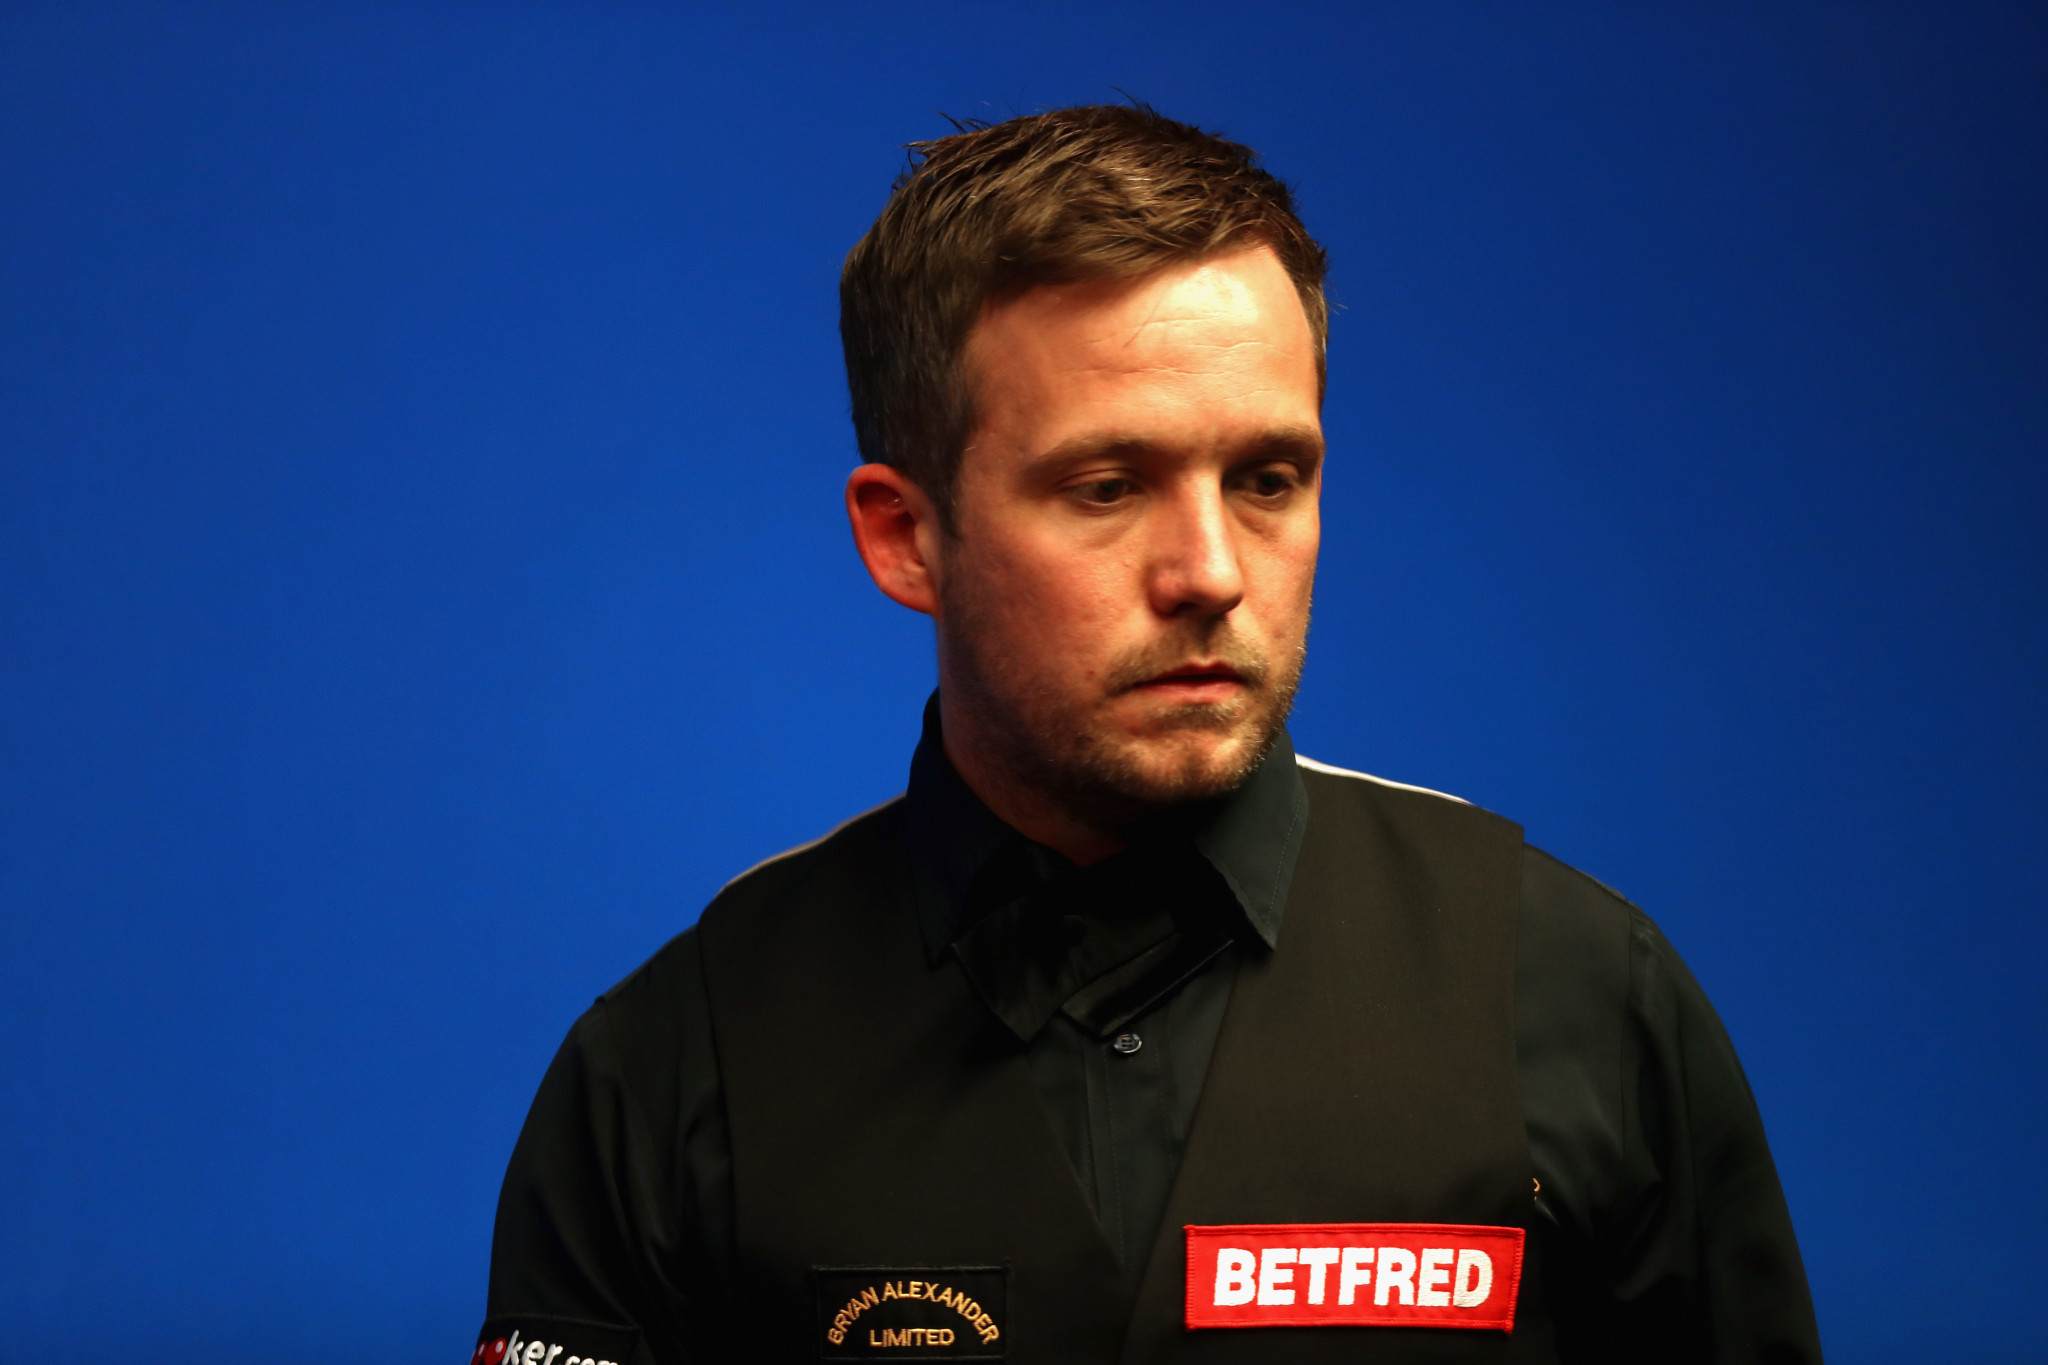 Jones suspended from World Snooker Tour after allegations of match-fixing